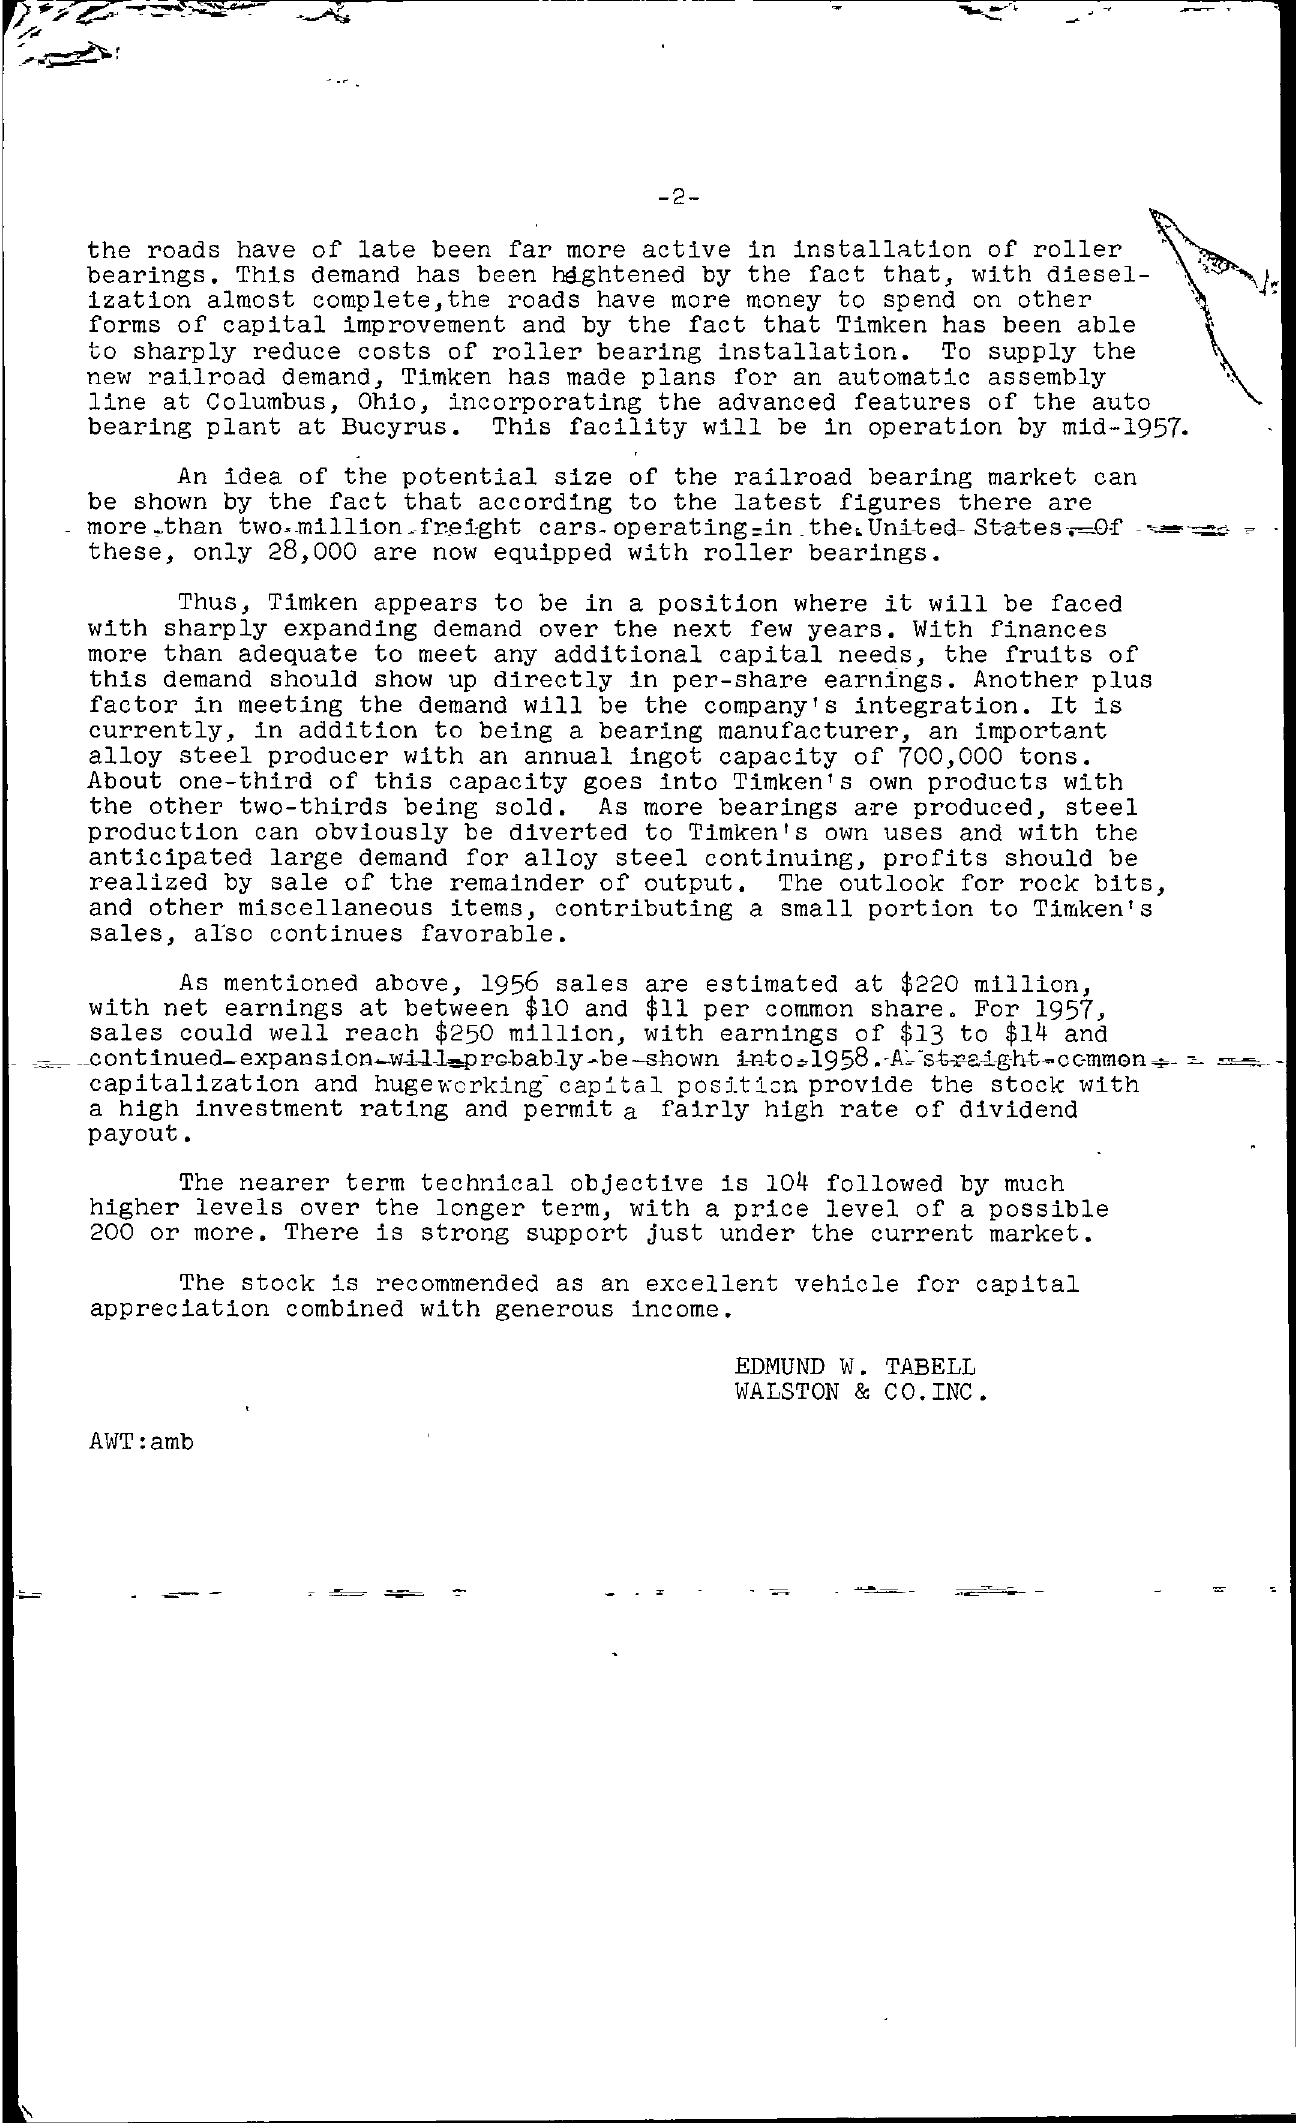 Tabell's Market Letter - October 26, 1956 page 2